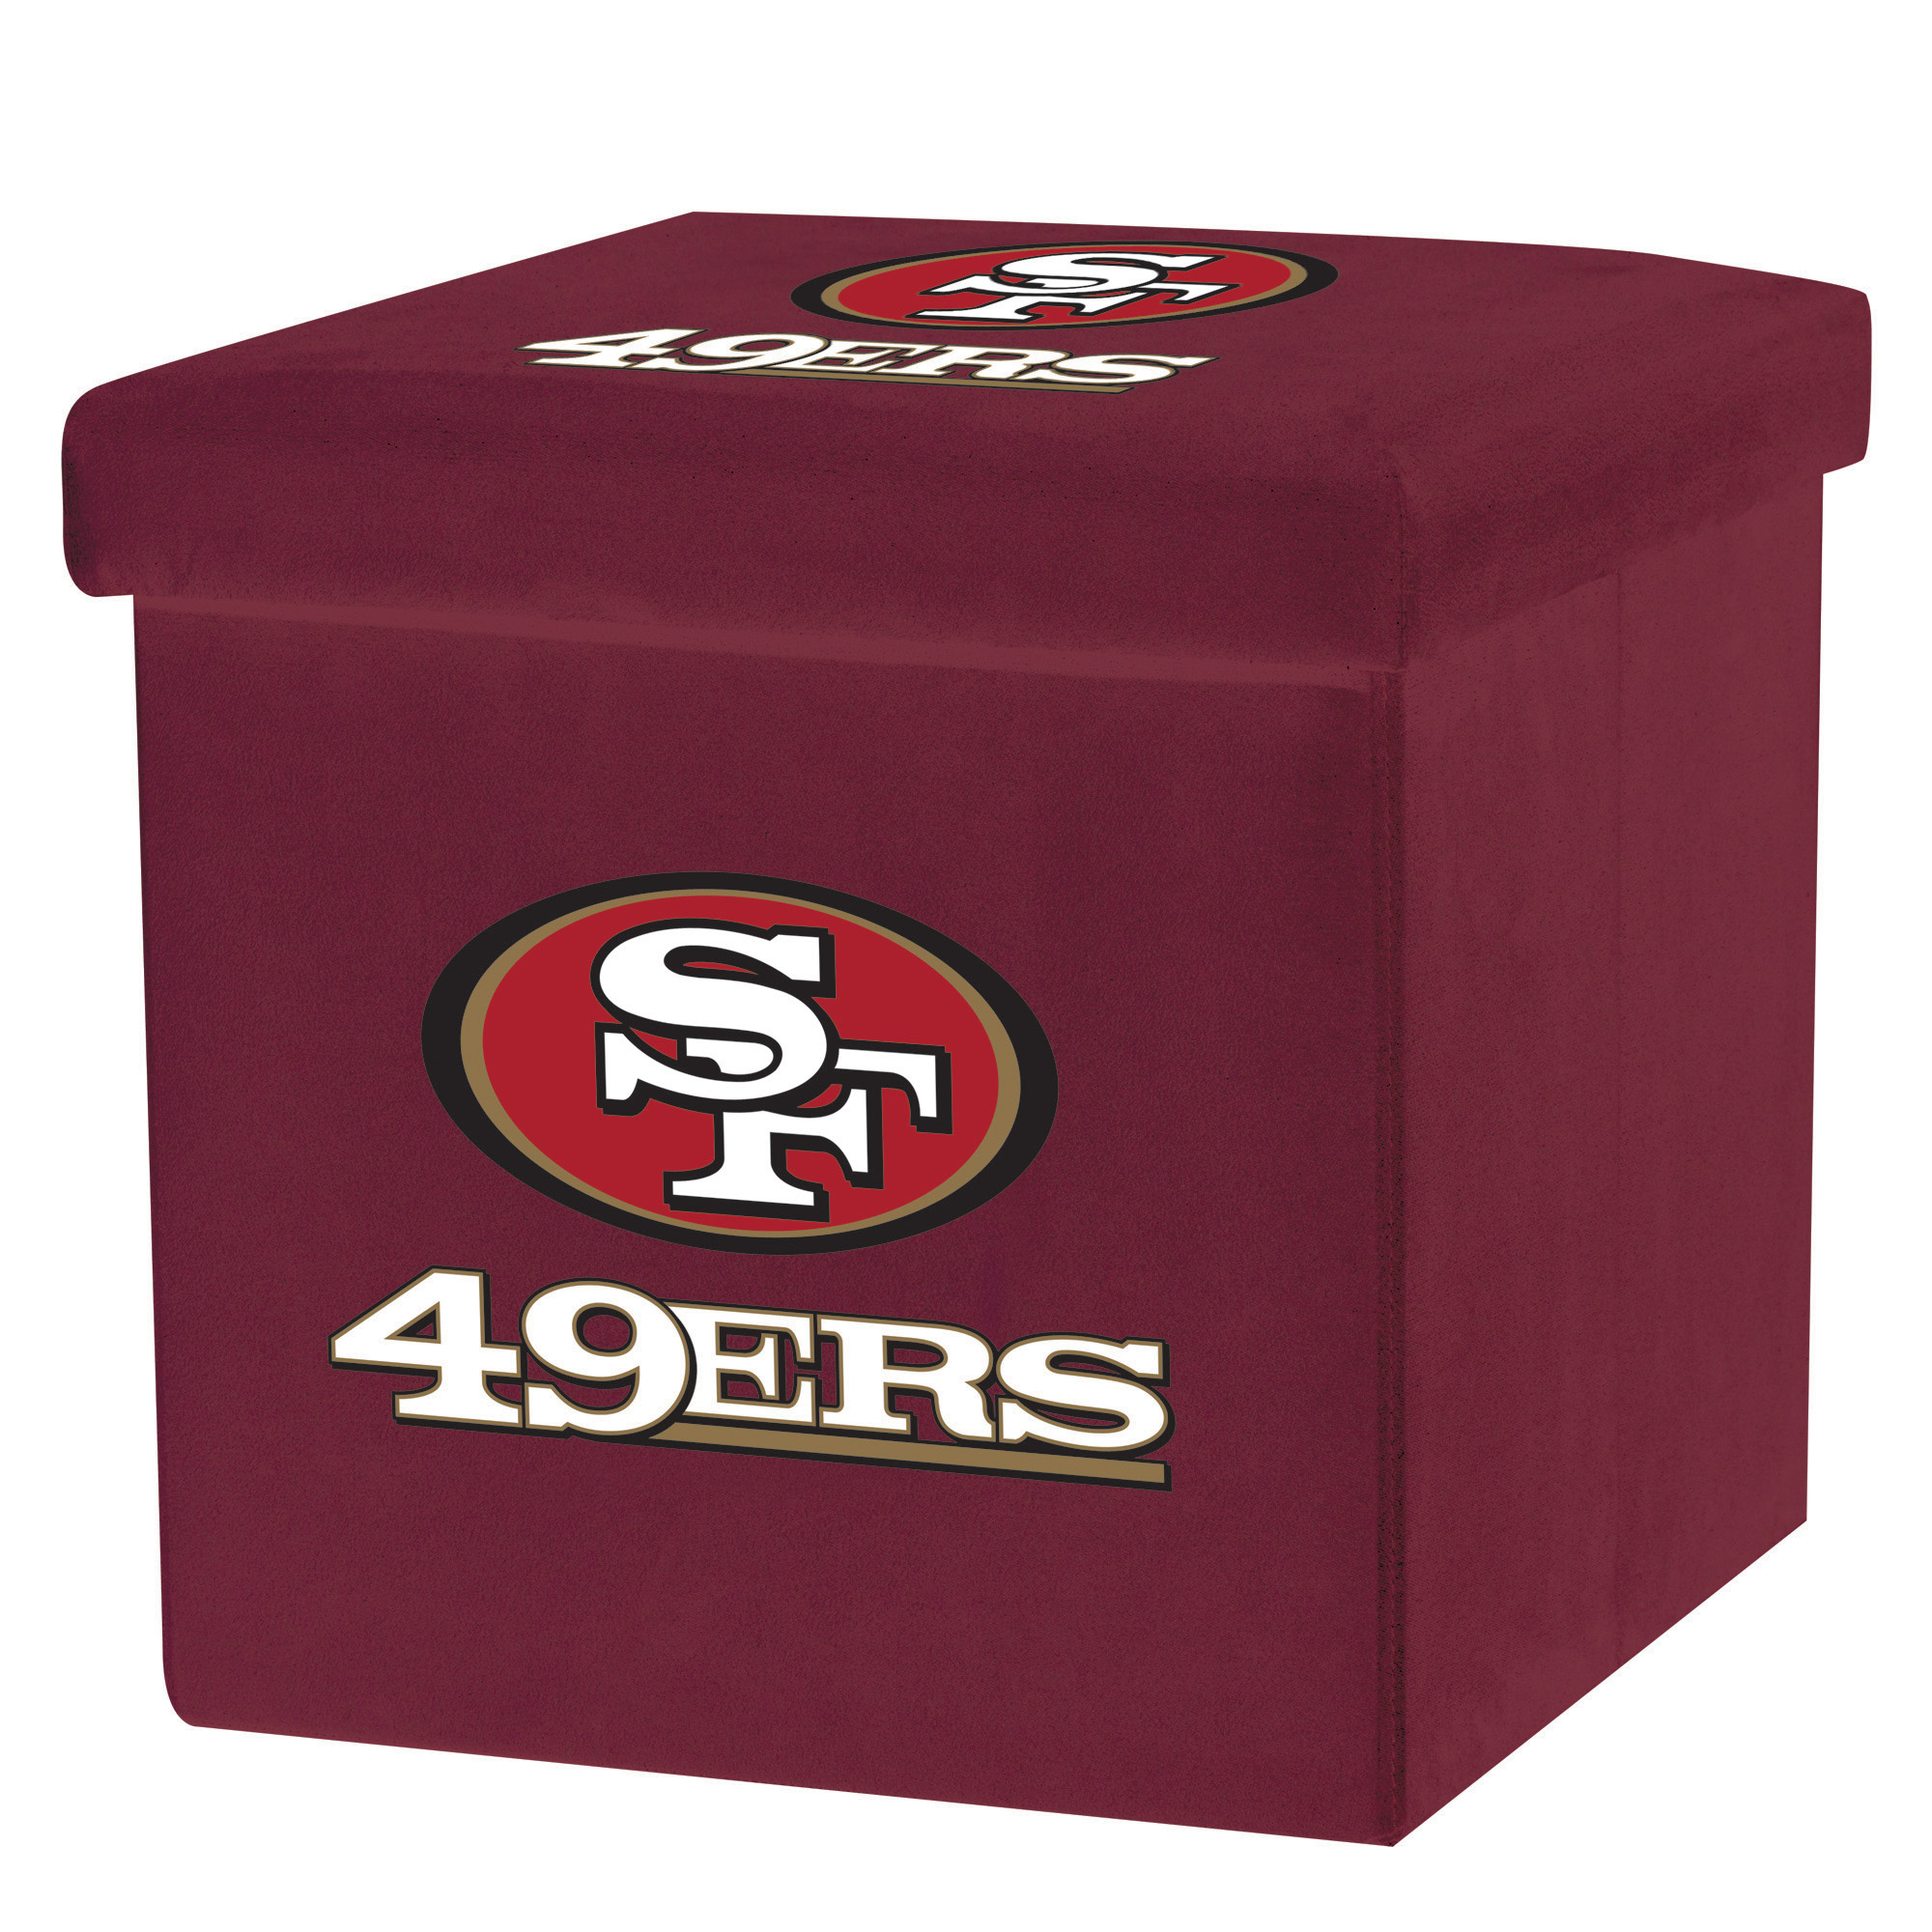 Franklin Sports NFL San Francisco 49Ers Storage Ottoman with Detachable Lid